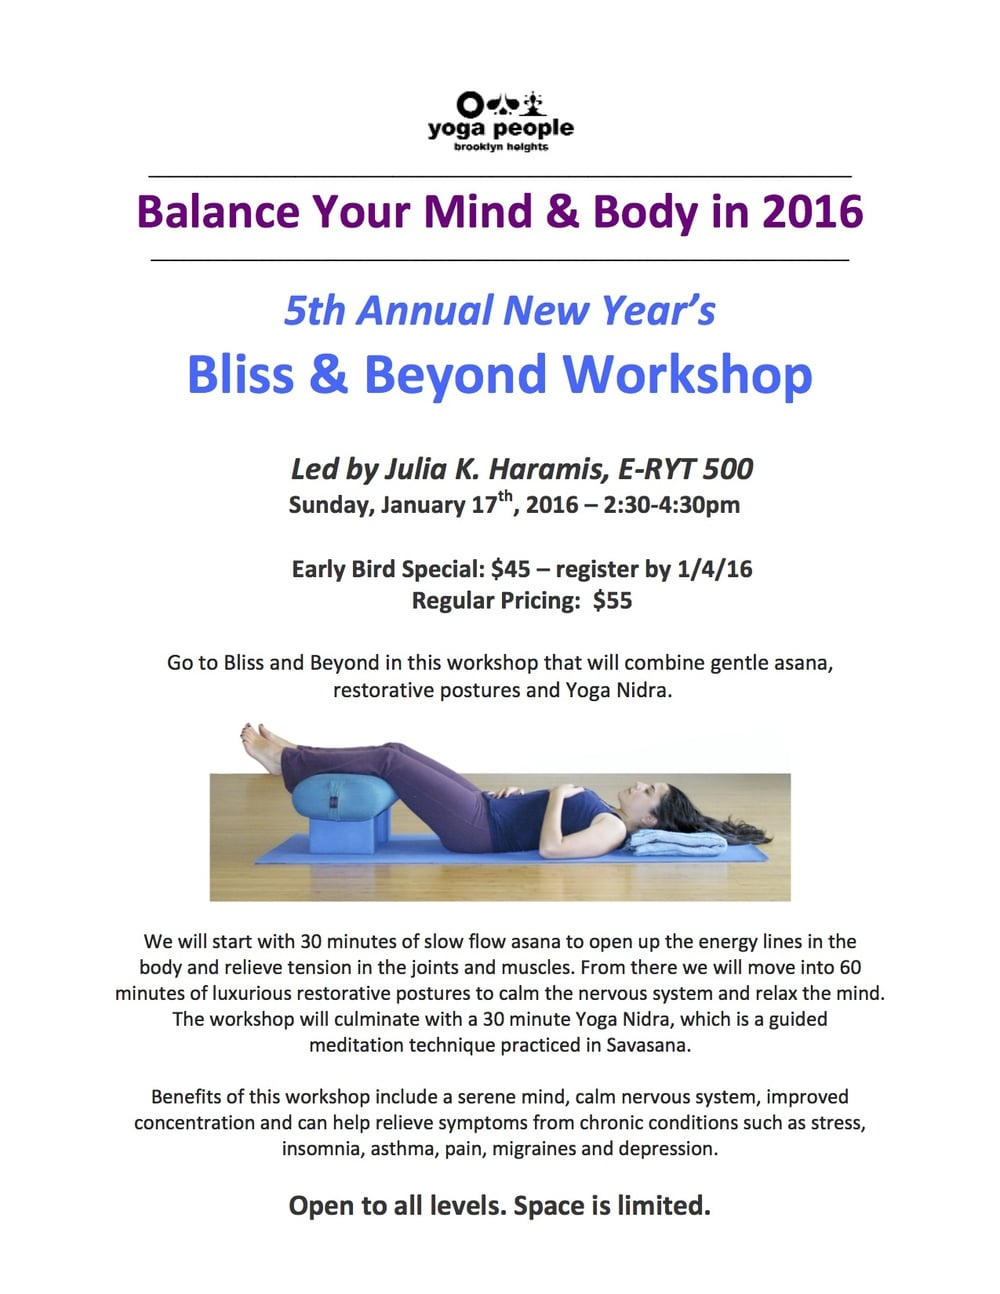 Bliss and Beyond Workshop Flyer